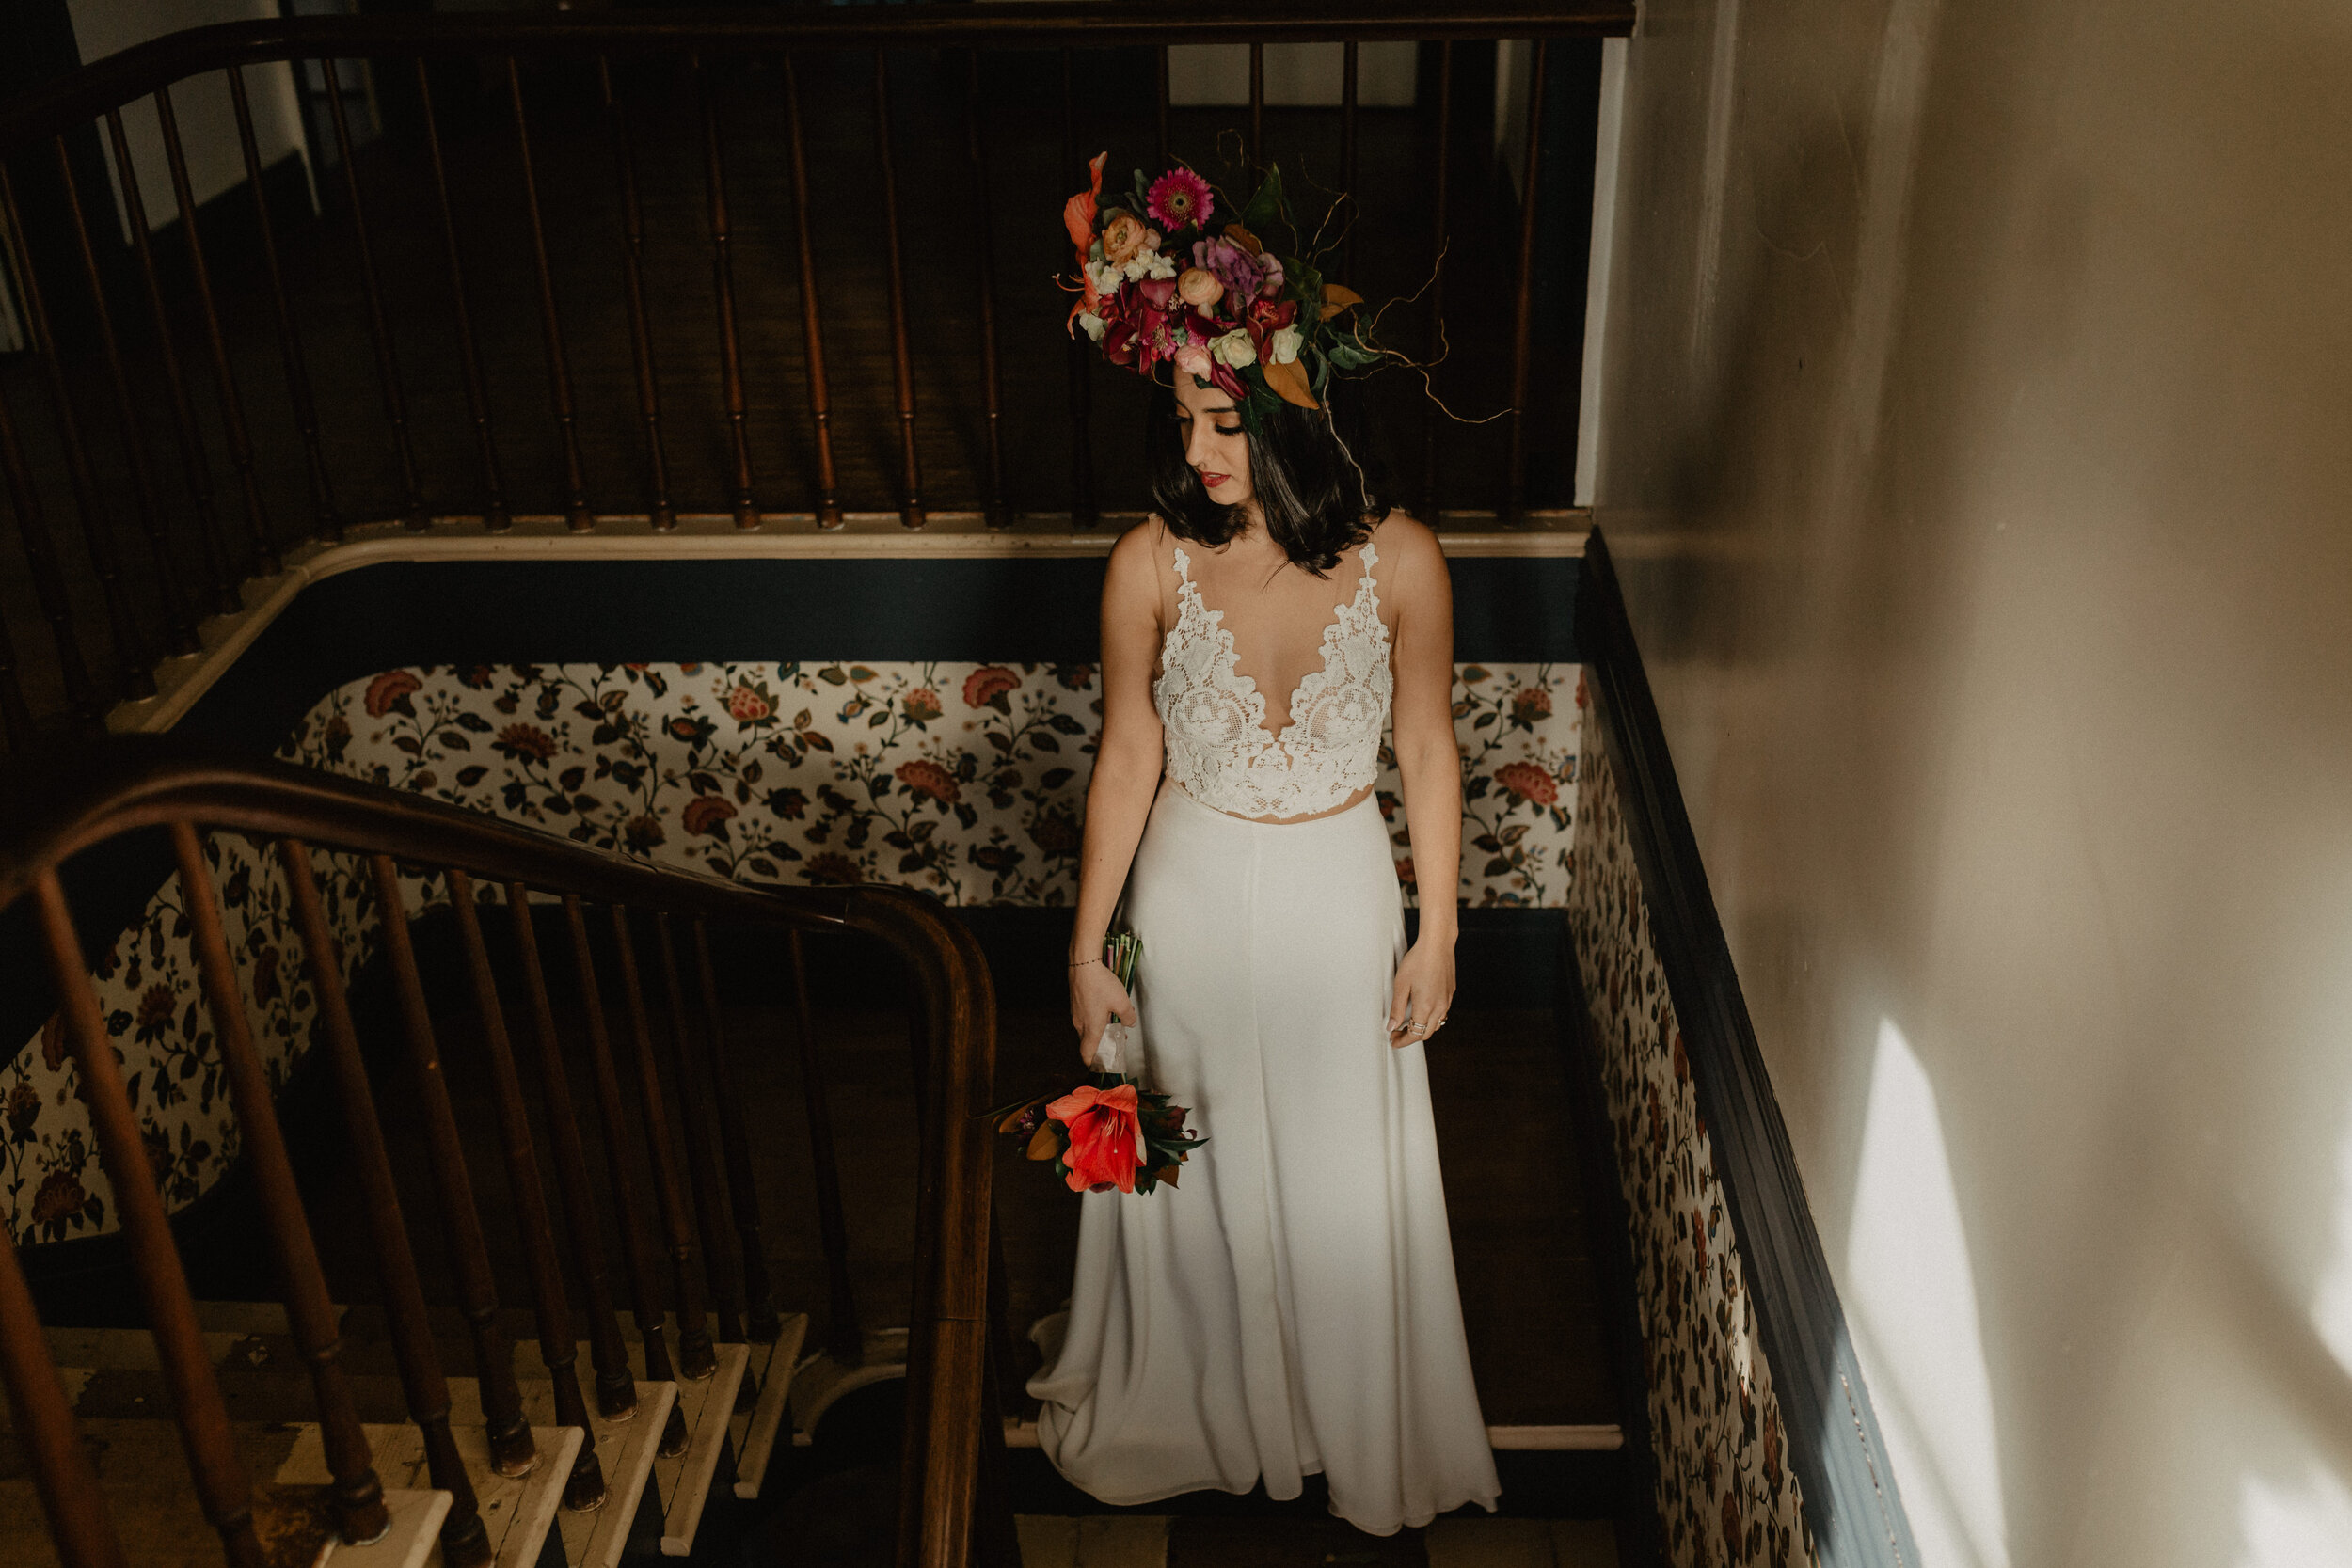 Wedding Gown and Floral Crown